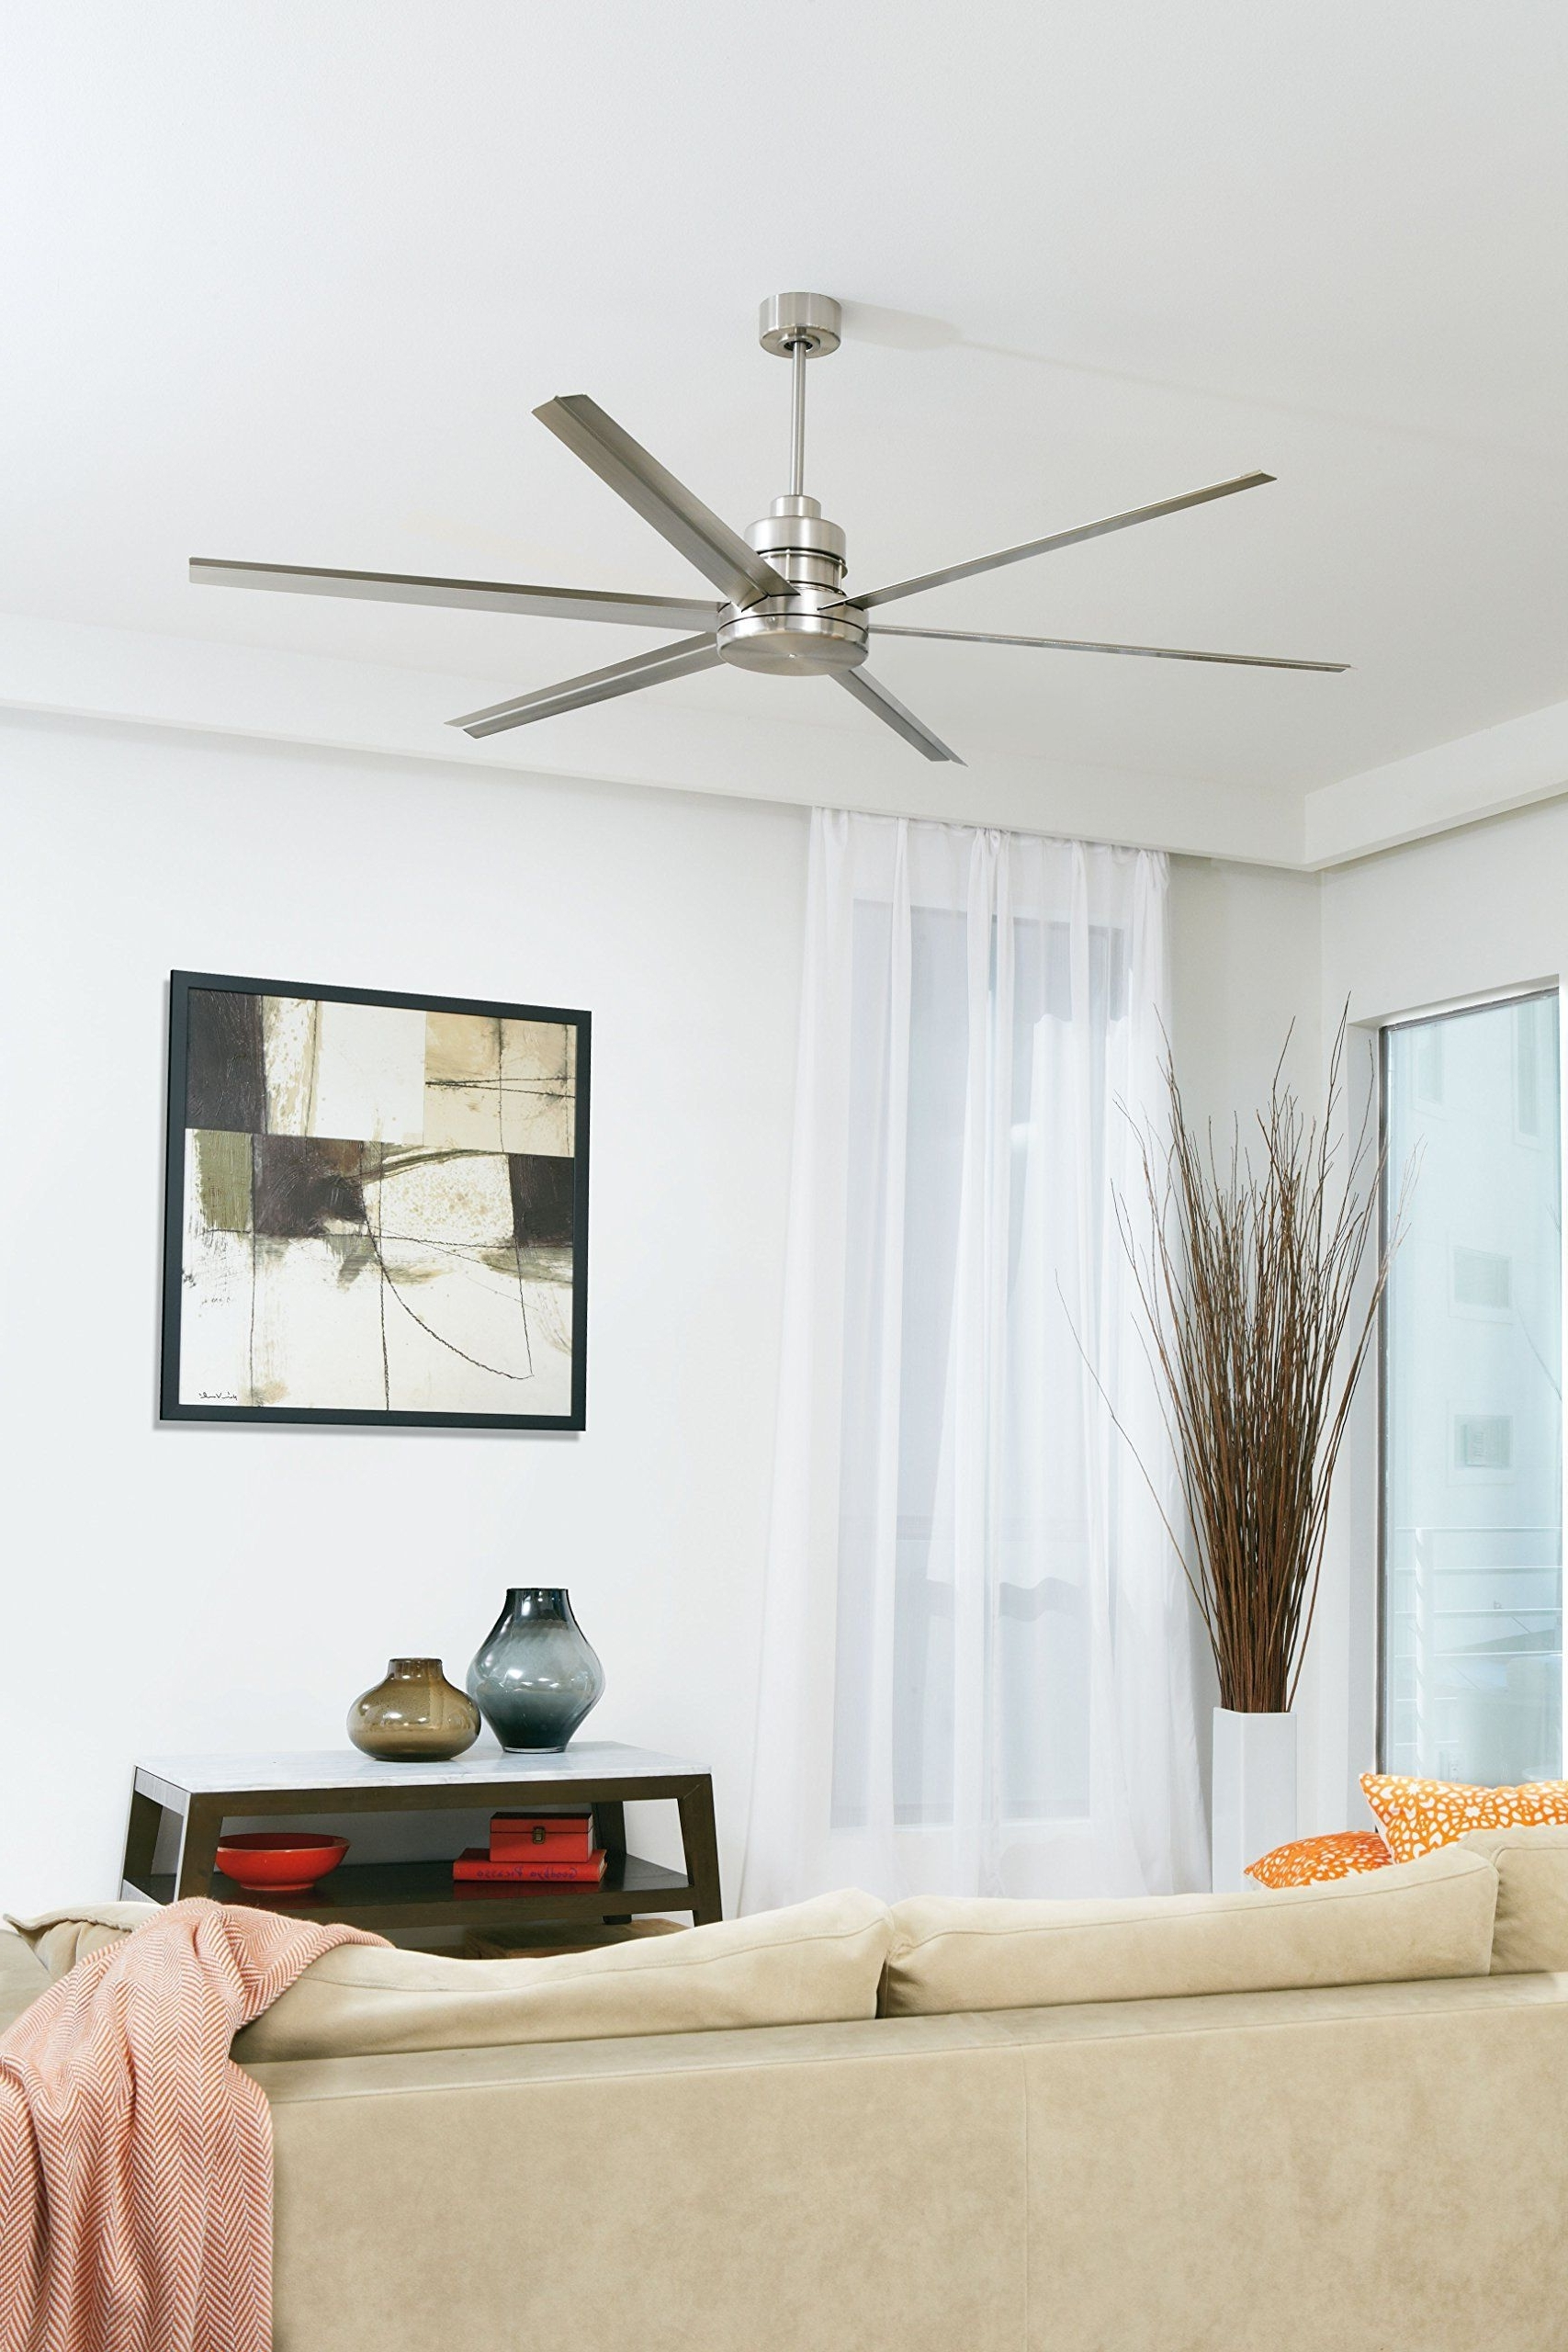 72 Inch Outdoor Ceiling Fans With Light Throughout Most Recent Craftmade Mnd72Esp6 Mondo 72 Inch Espresso Six Blade Metal Outdoor (Gallery 19 of 20)